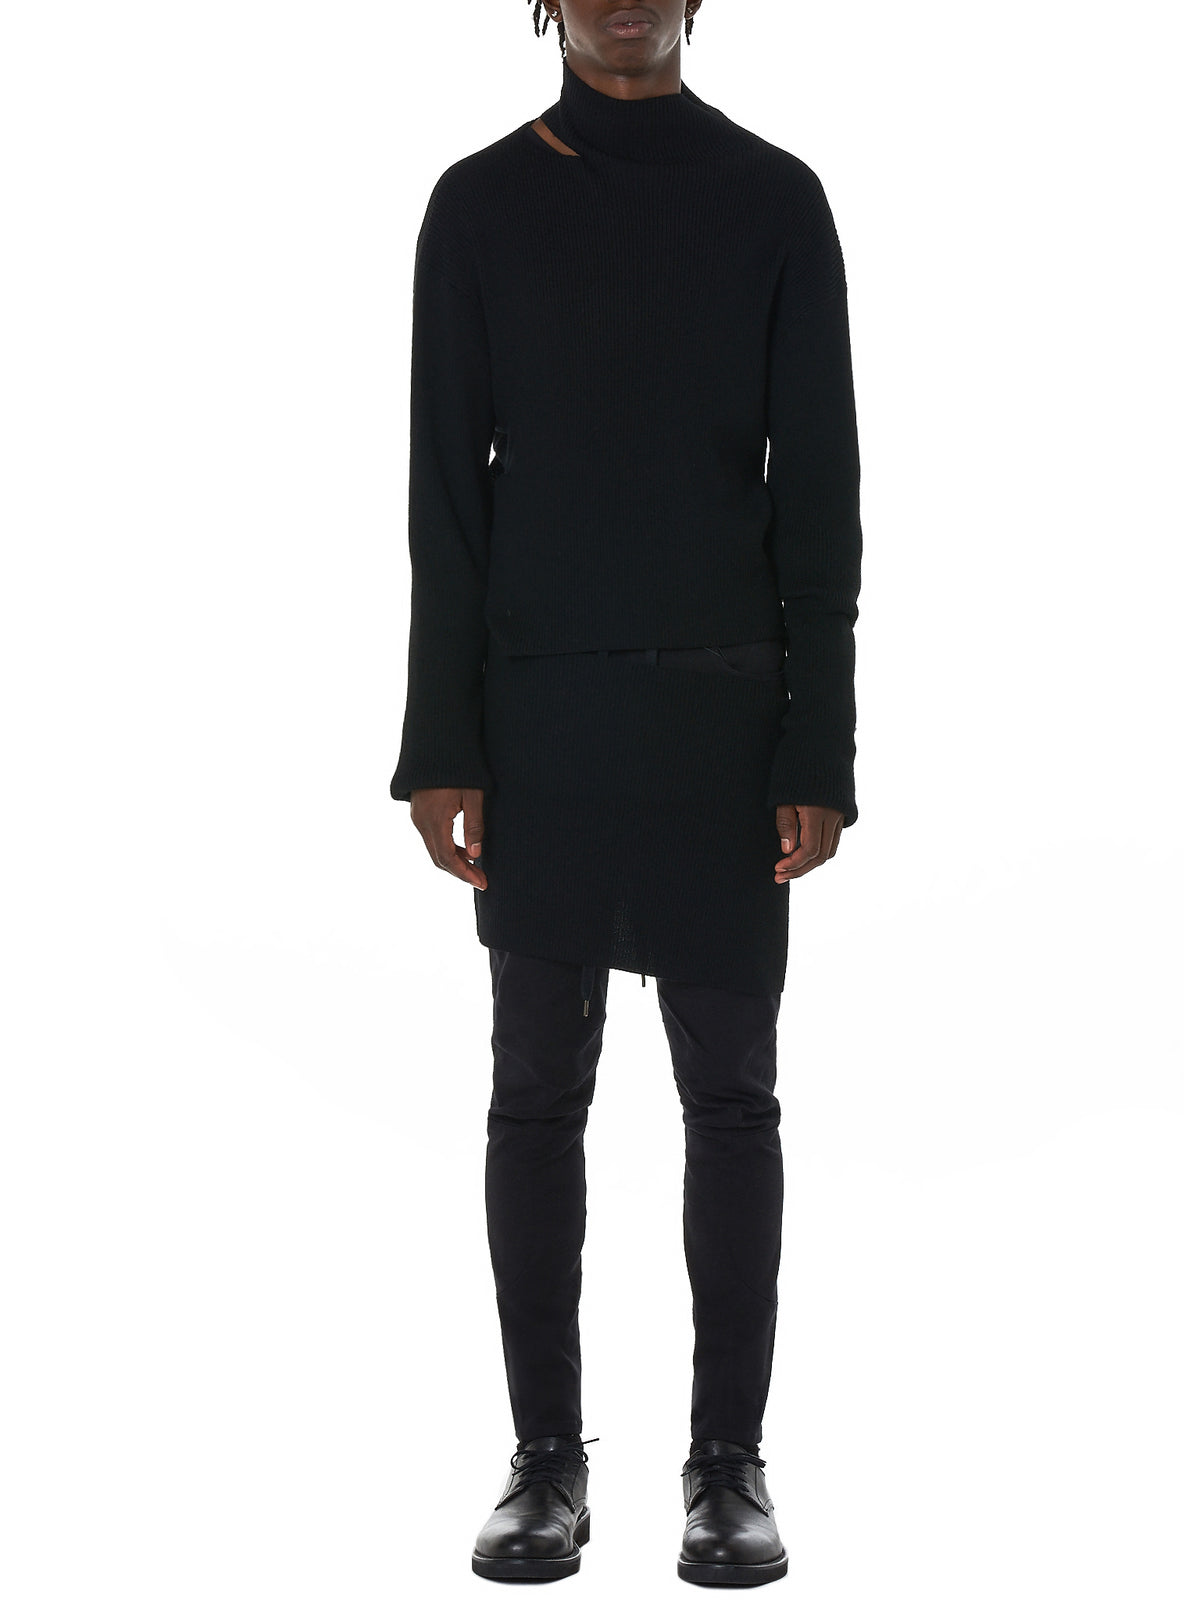 Ximon Lee Sweater - Hlorenzo Front